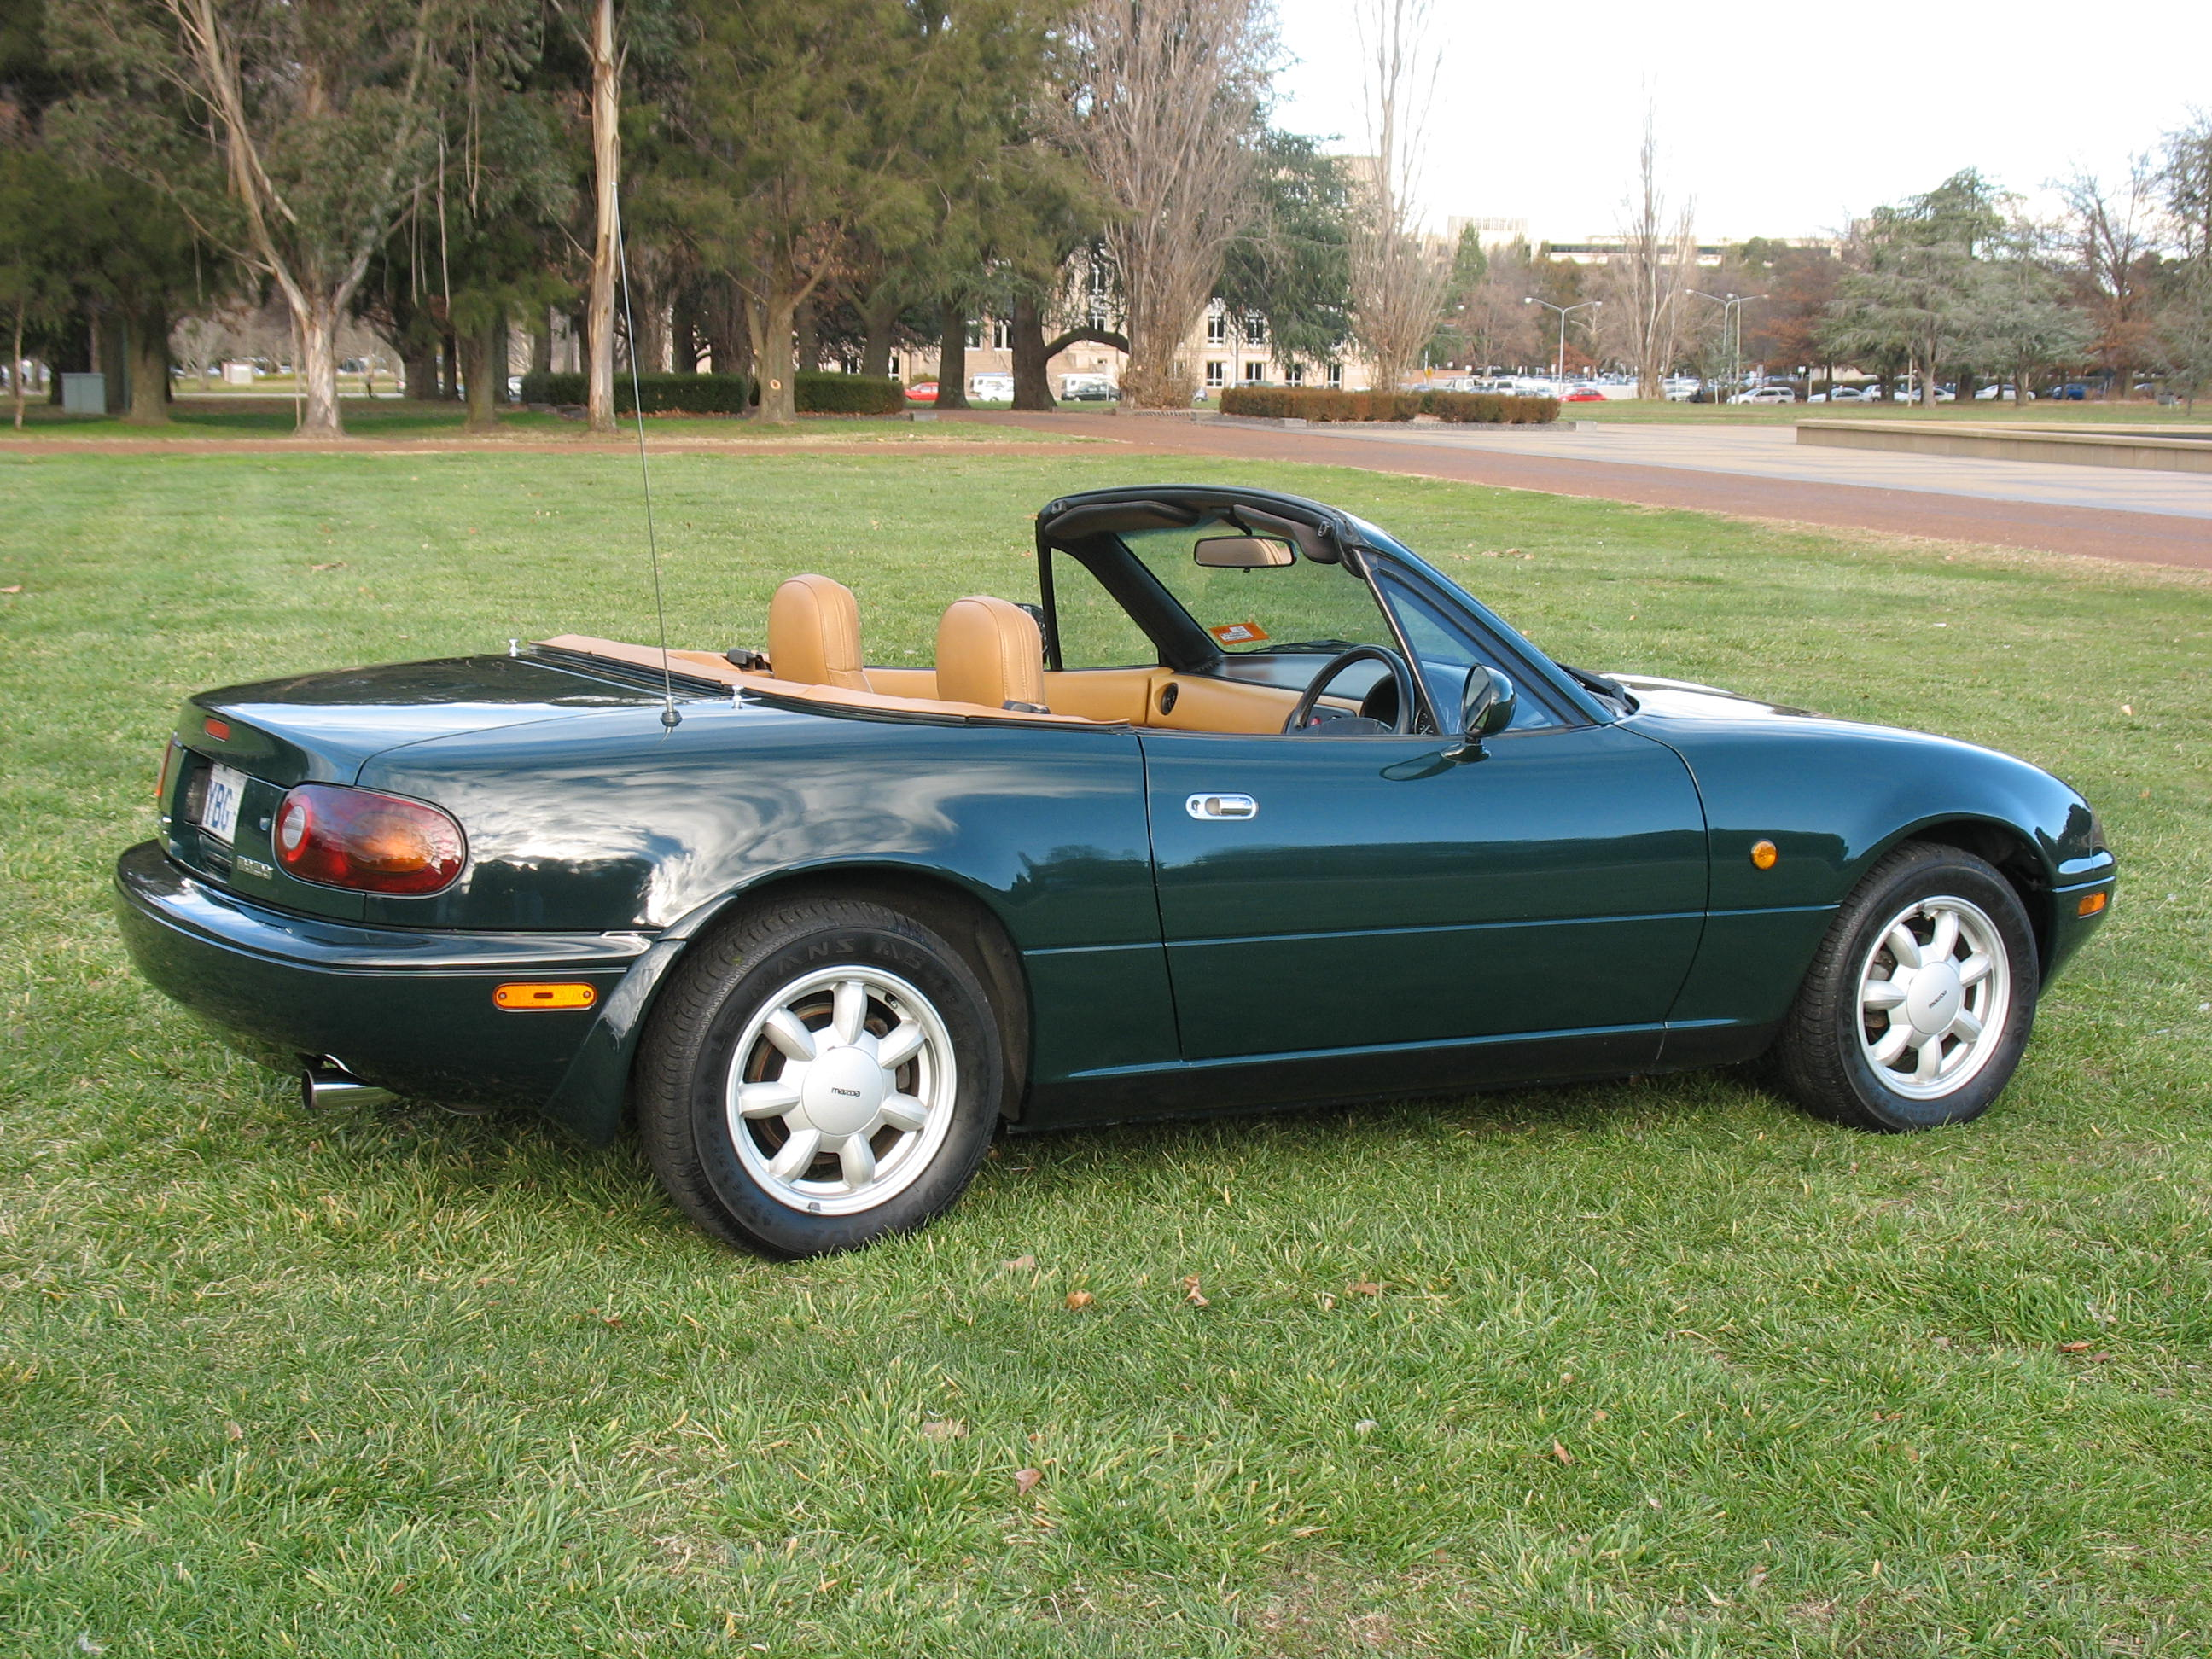 file 1990 1991 mazda mx 5 na limited edition convertible wikimedia commons. Black Bedroom Furniture Sets. Home Design Ideas